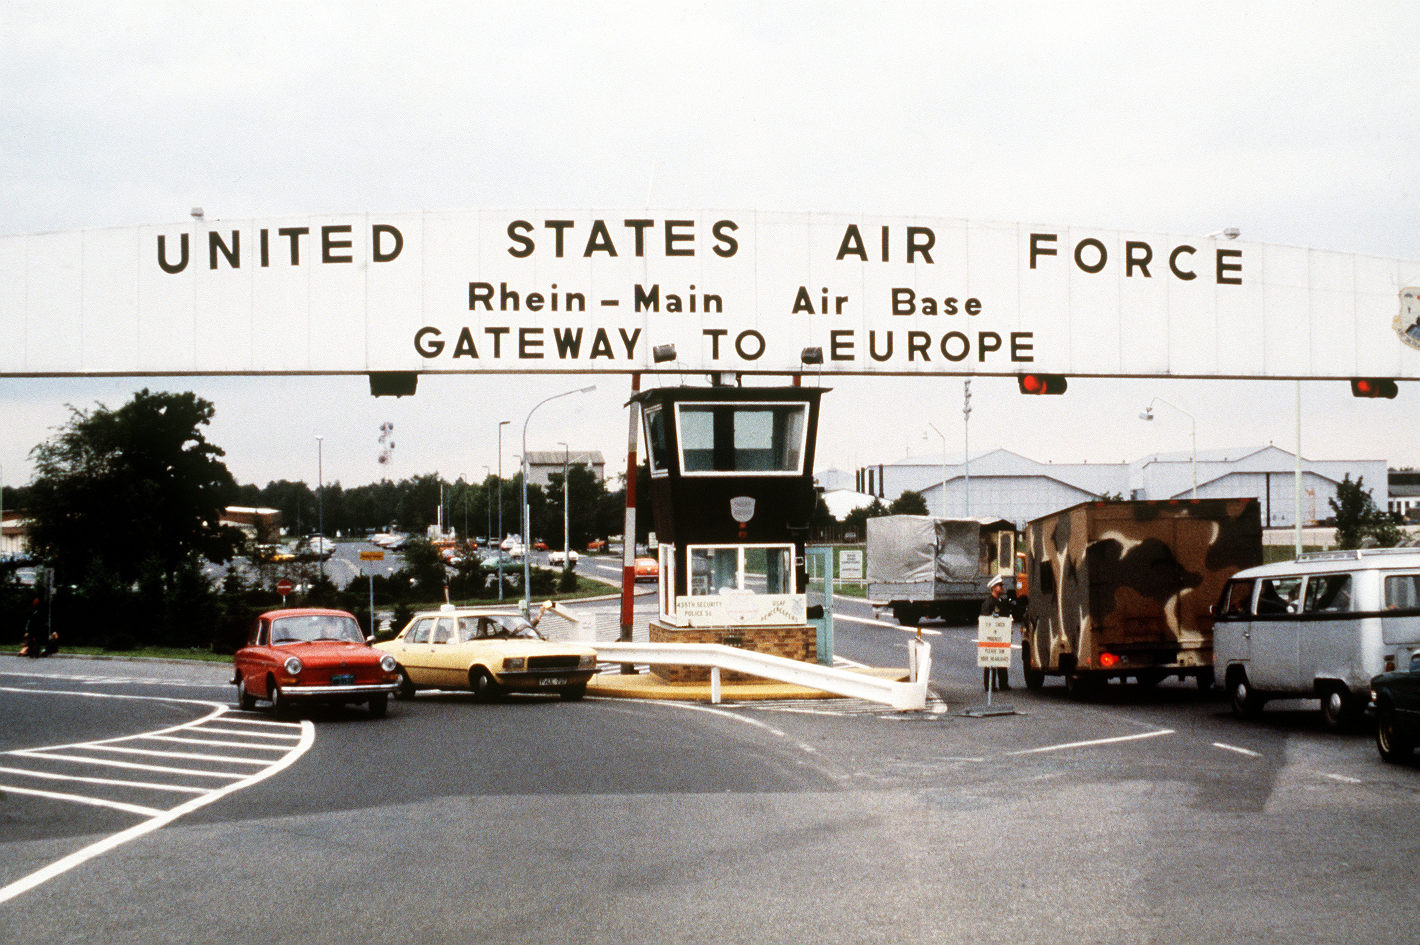 Main gate - United States Air Force Rhein Main Air Base Gateway to Europe